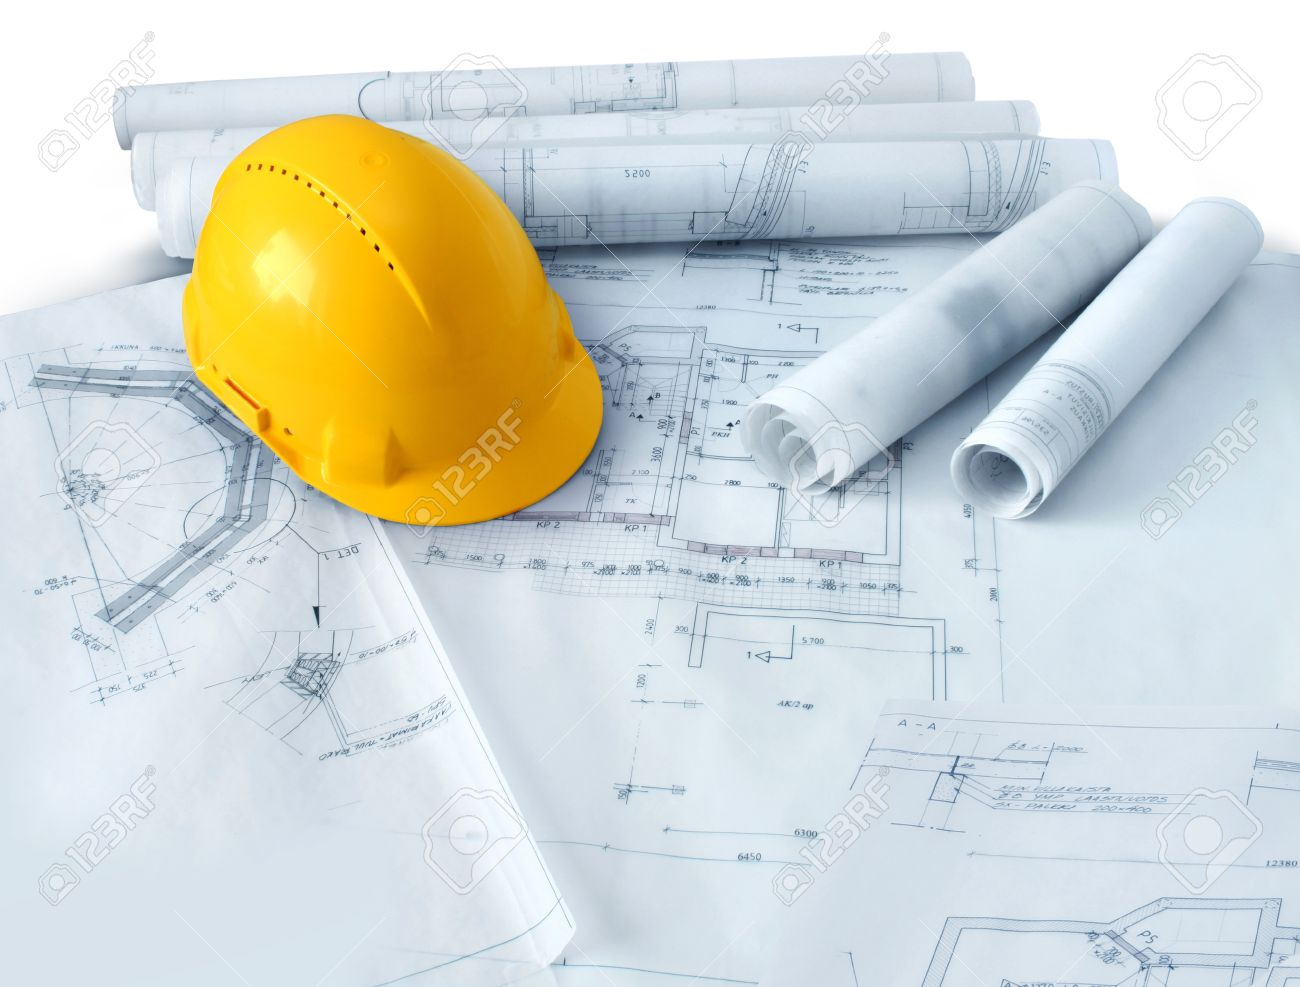 Construction Plans Drawings Rolls And Yellow Hard Hat Helmet Stock Photo